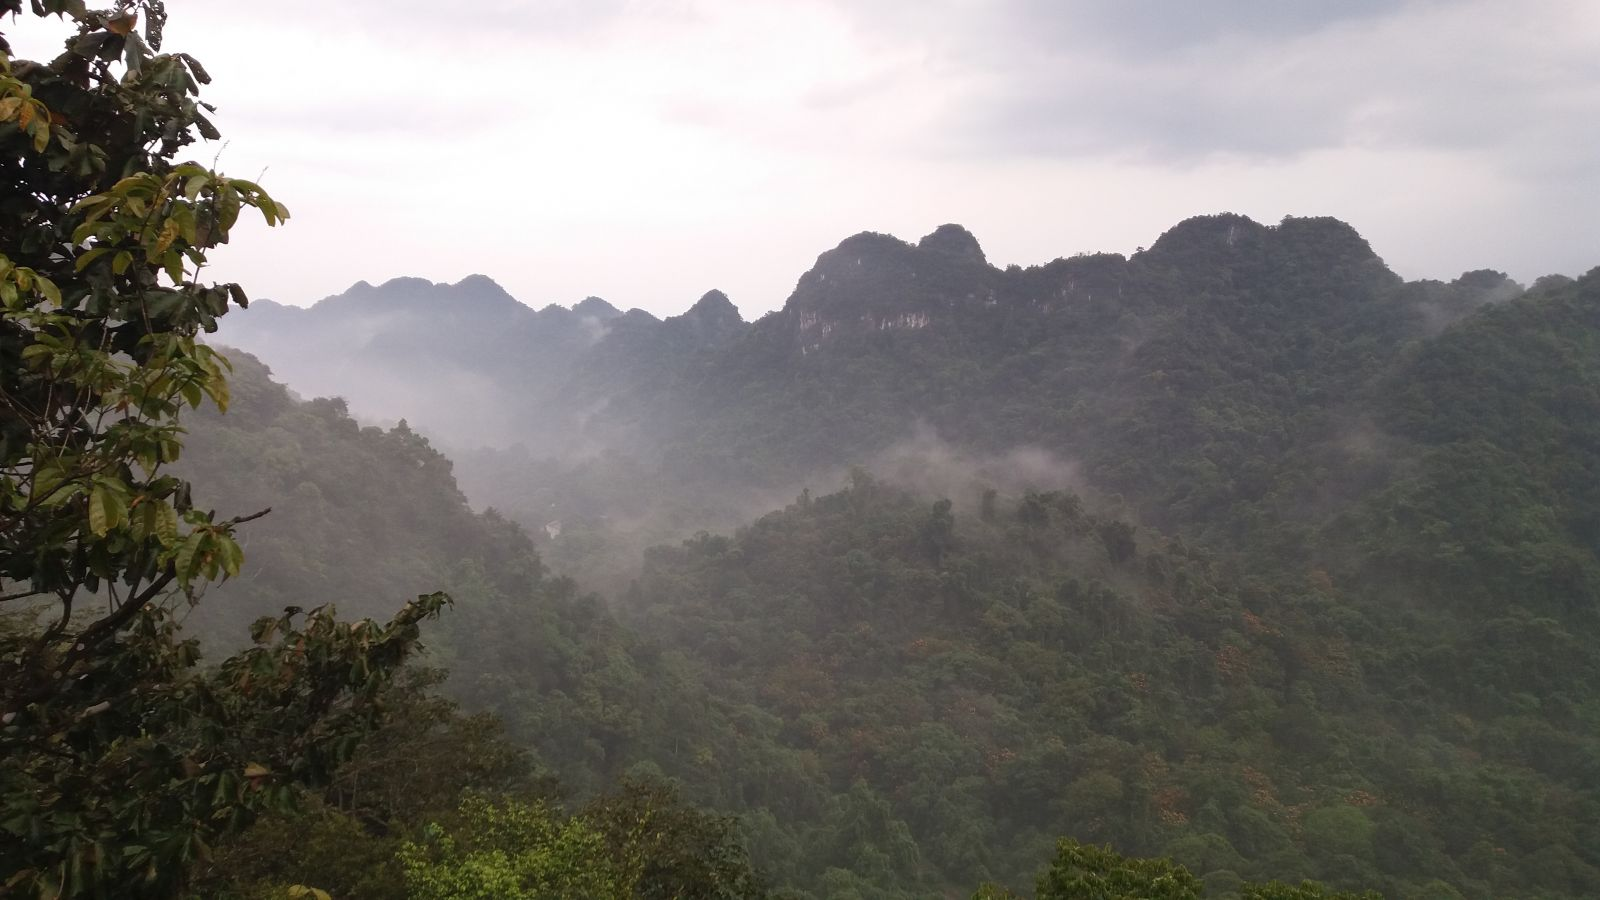 Private car rental to Cuc Phuong National Park & Ninh Binh